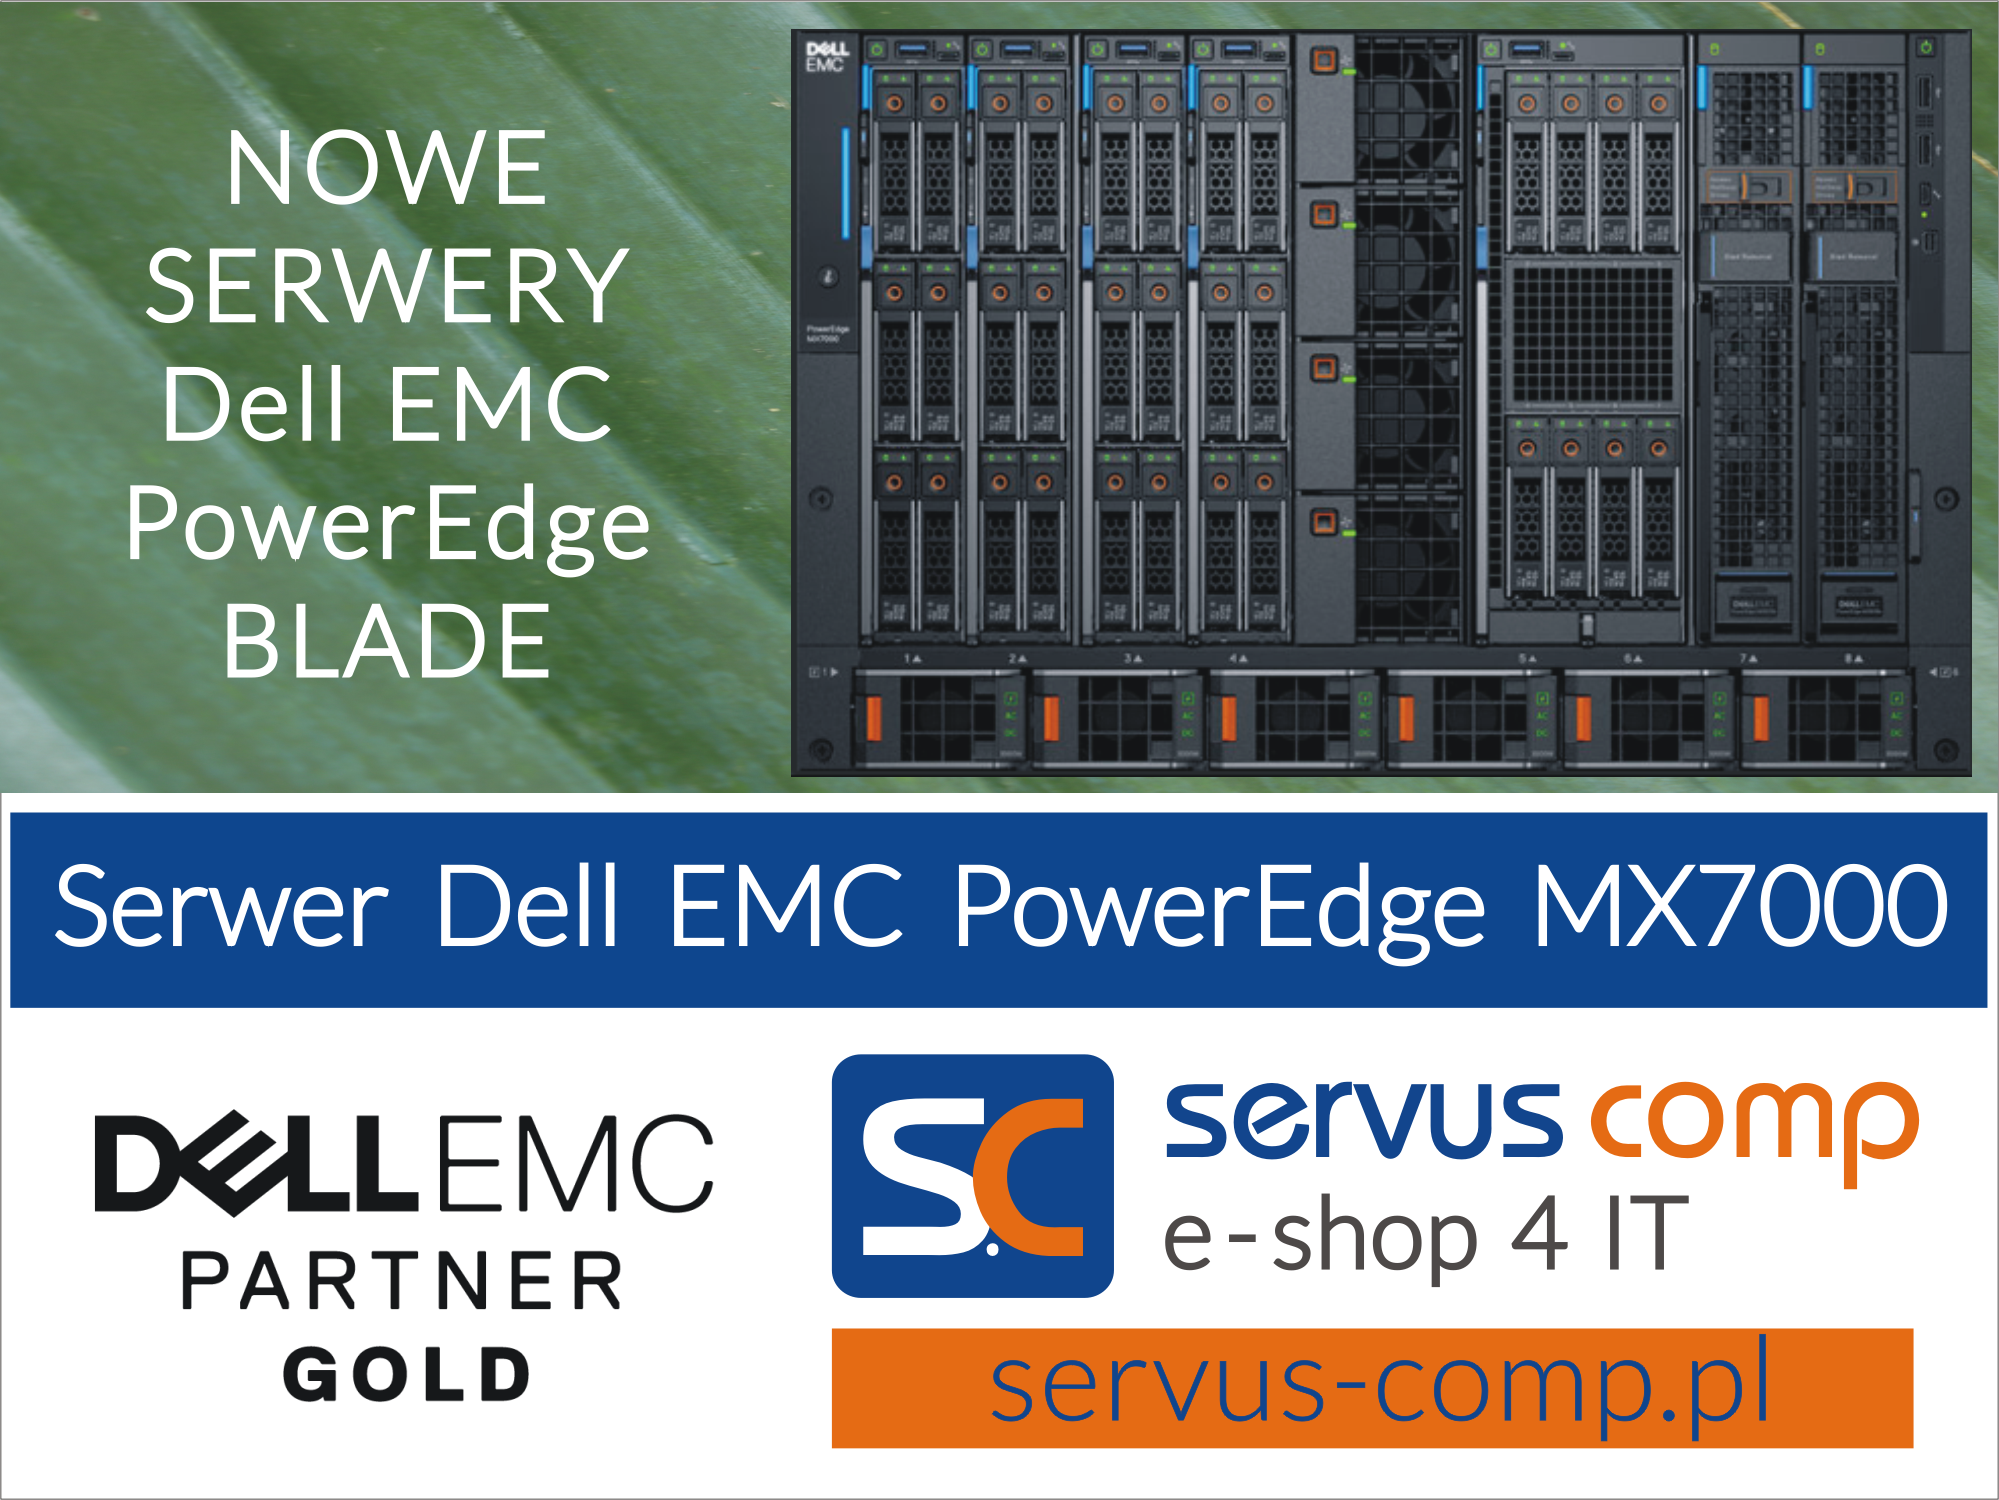 Obudowa blade serwer Dell EMC PowerEdge MX7000